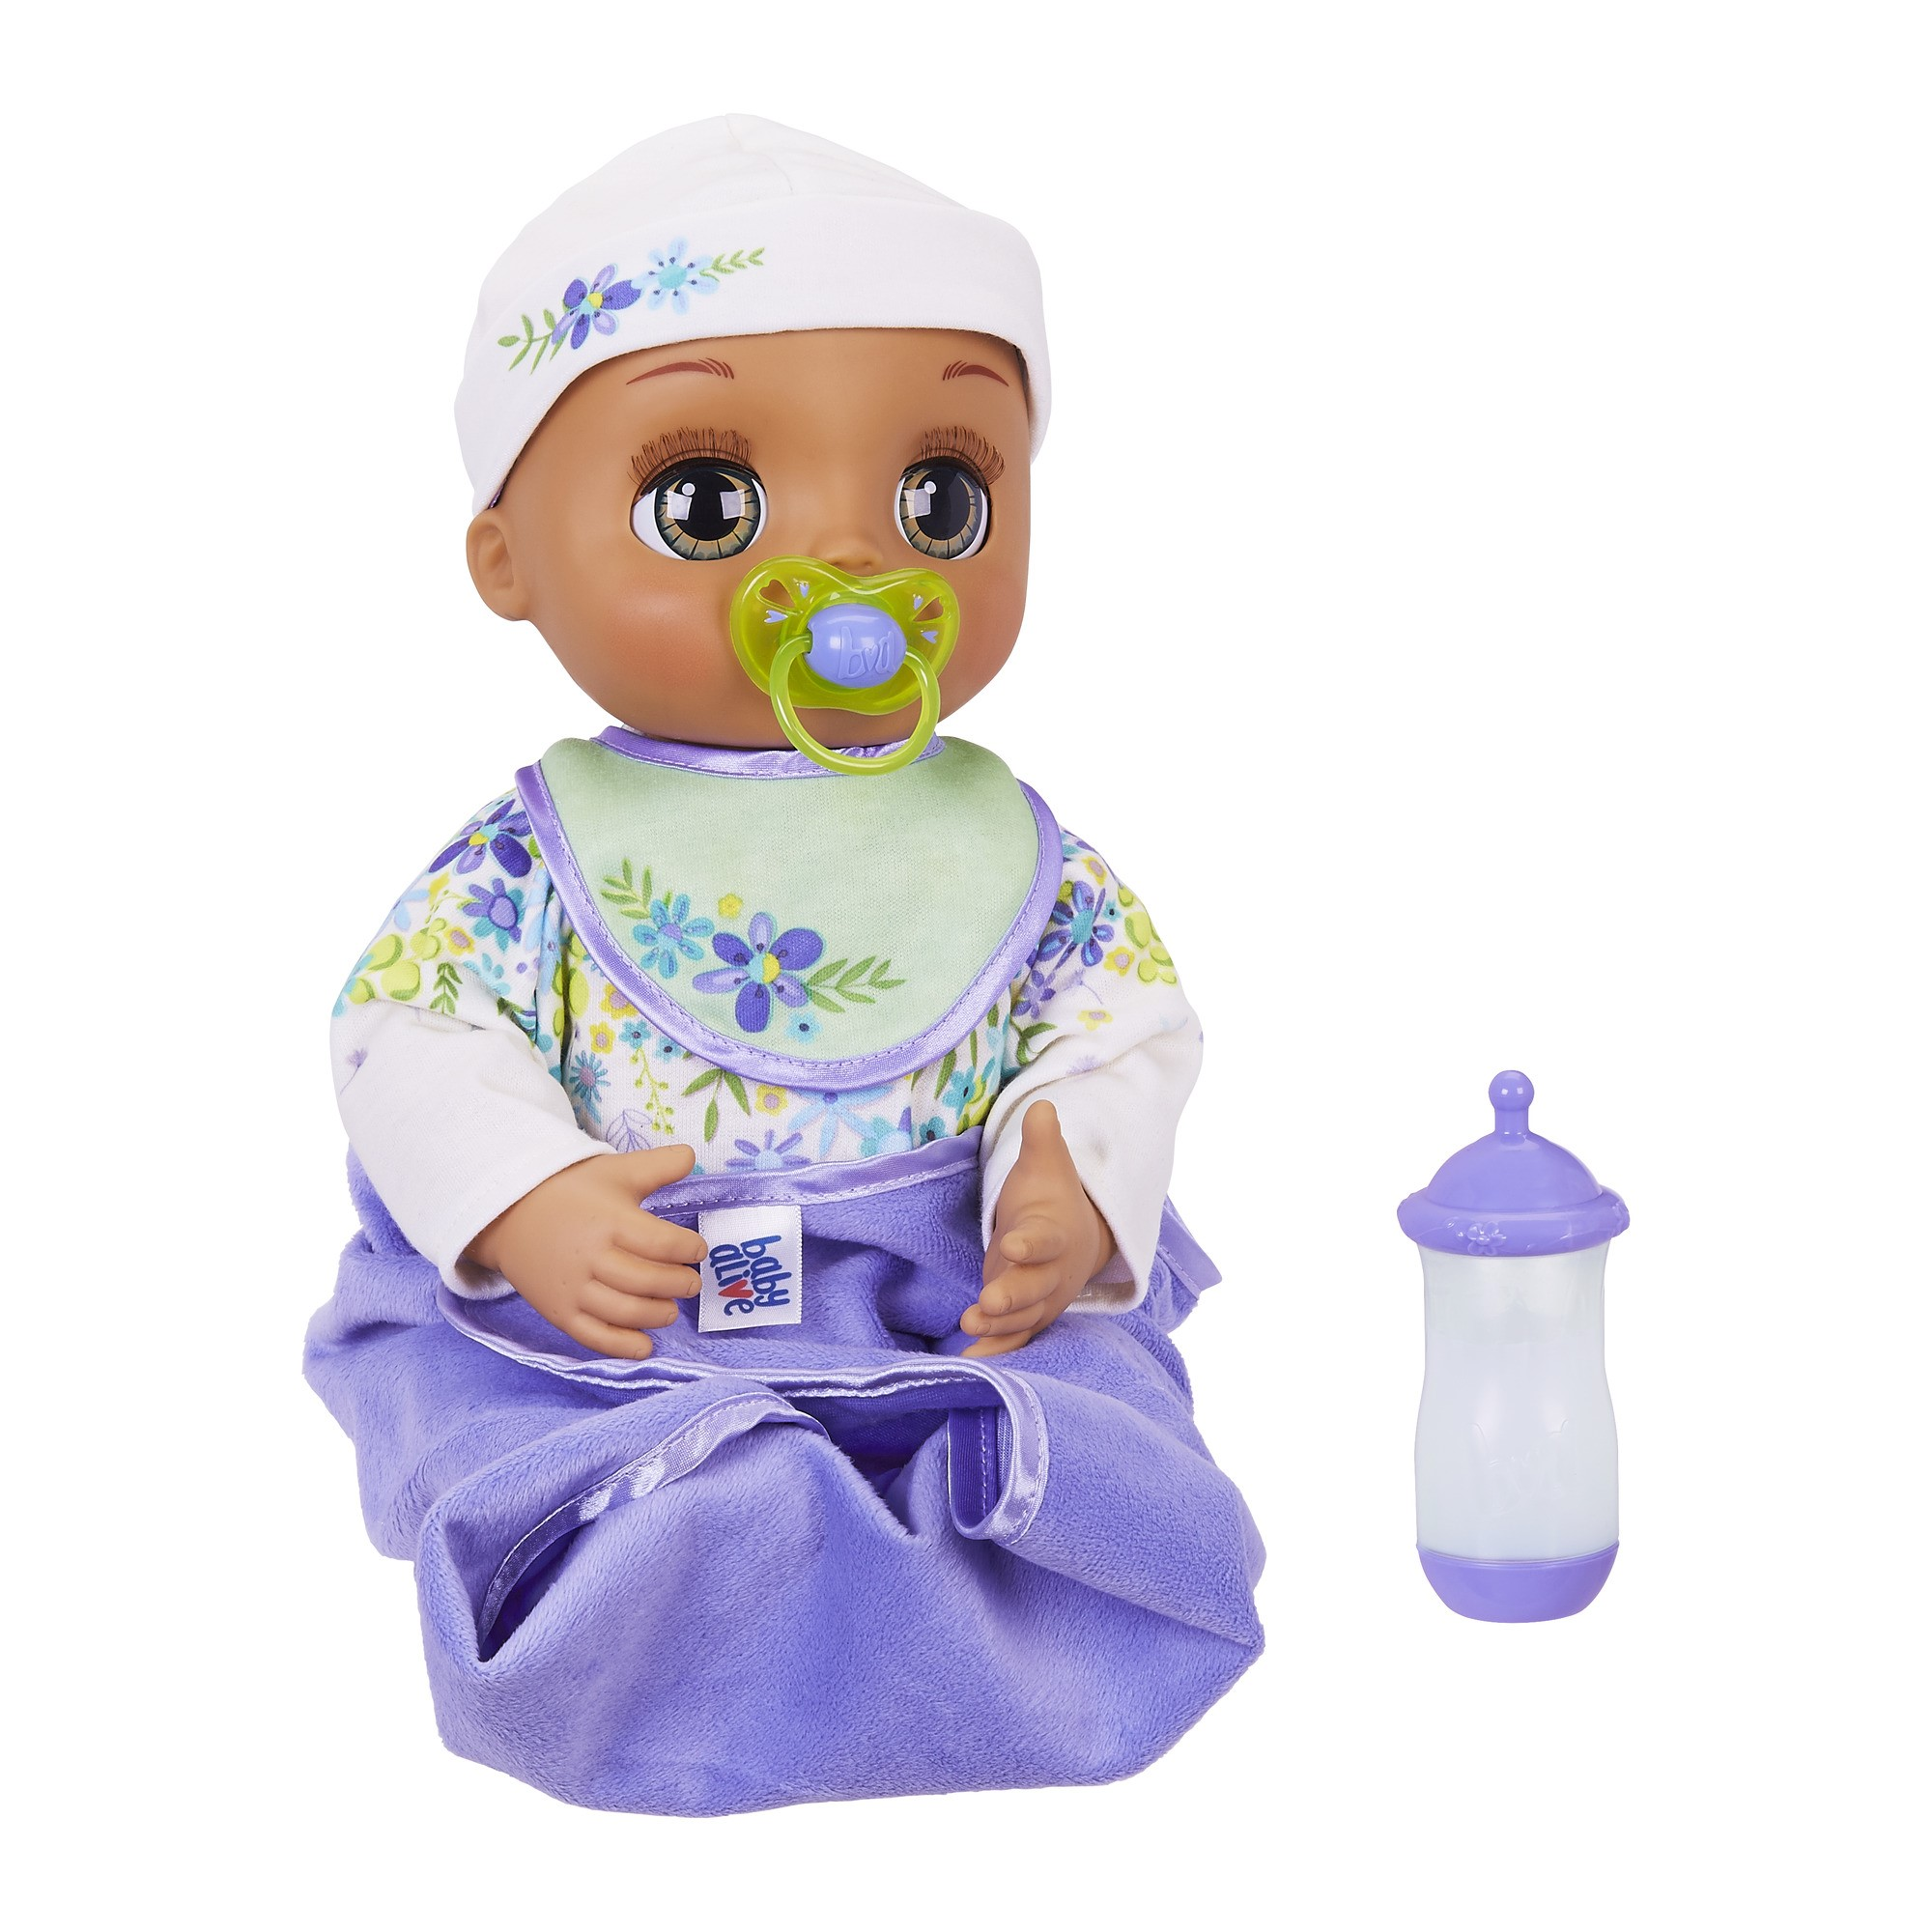 Baby alive real as can be baby: 80+ lifelike expressions